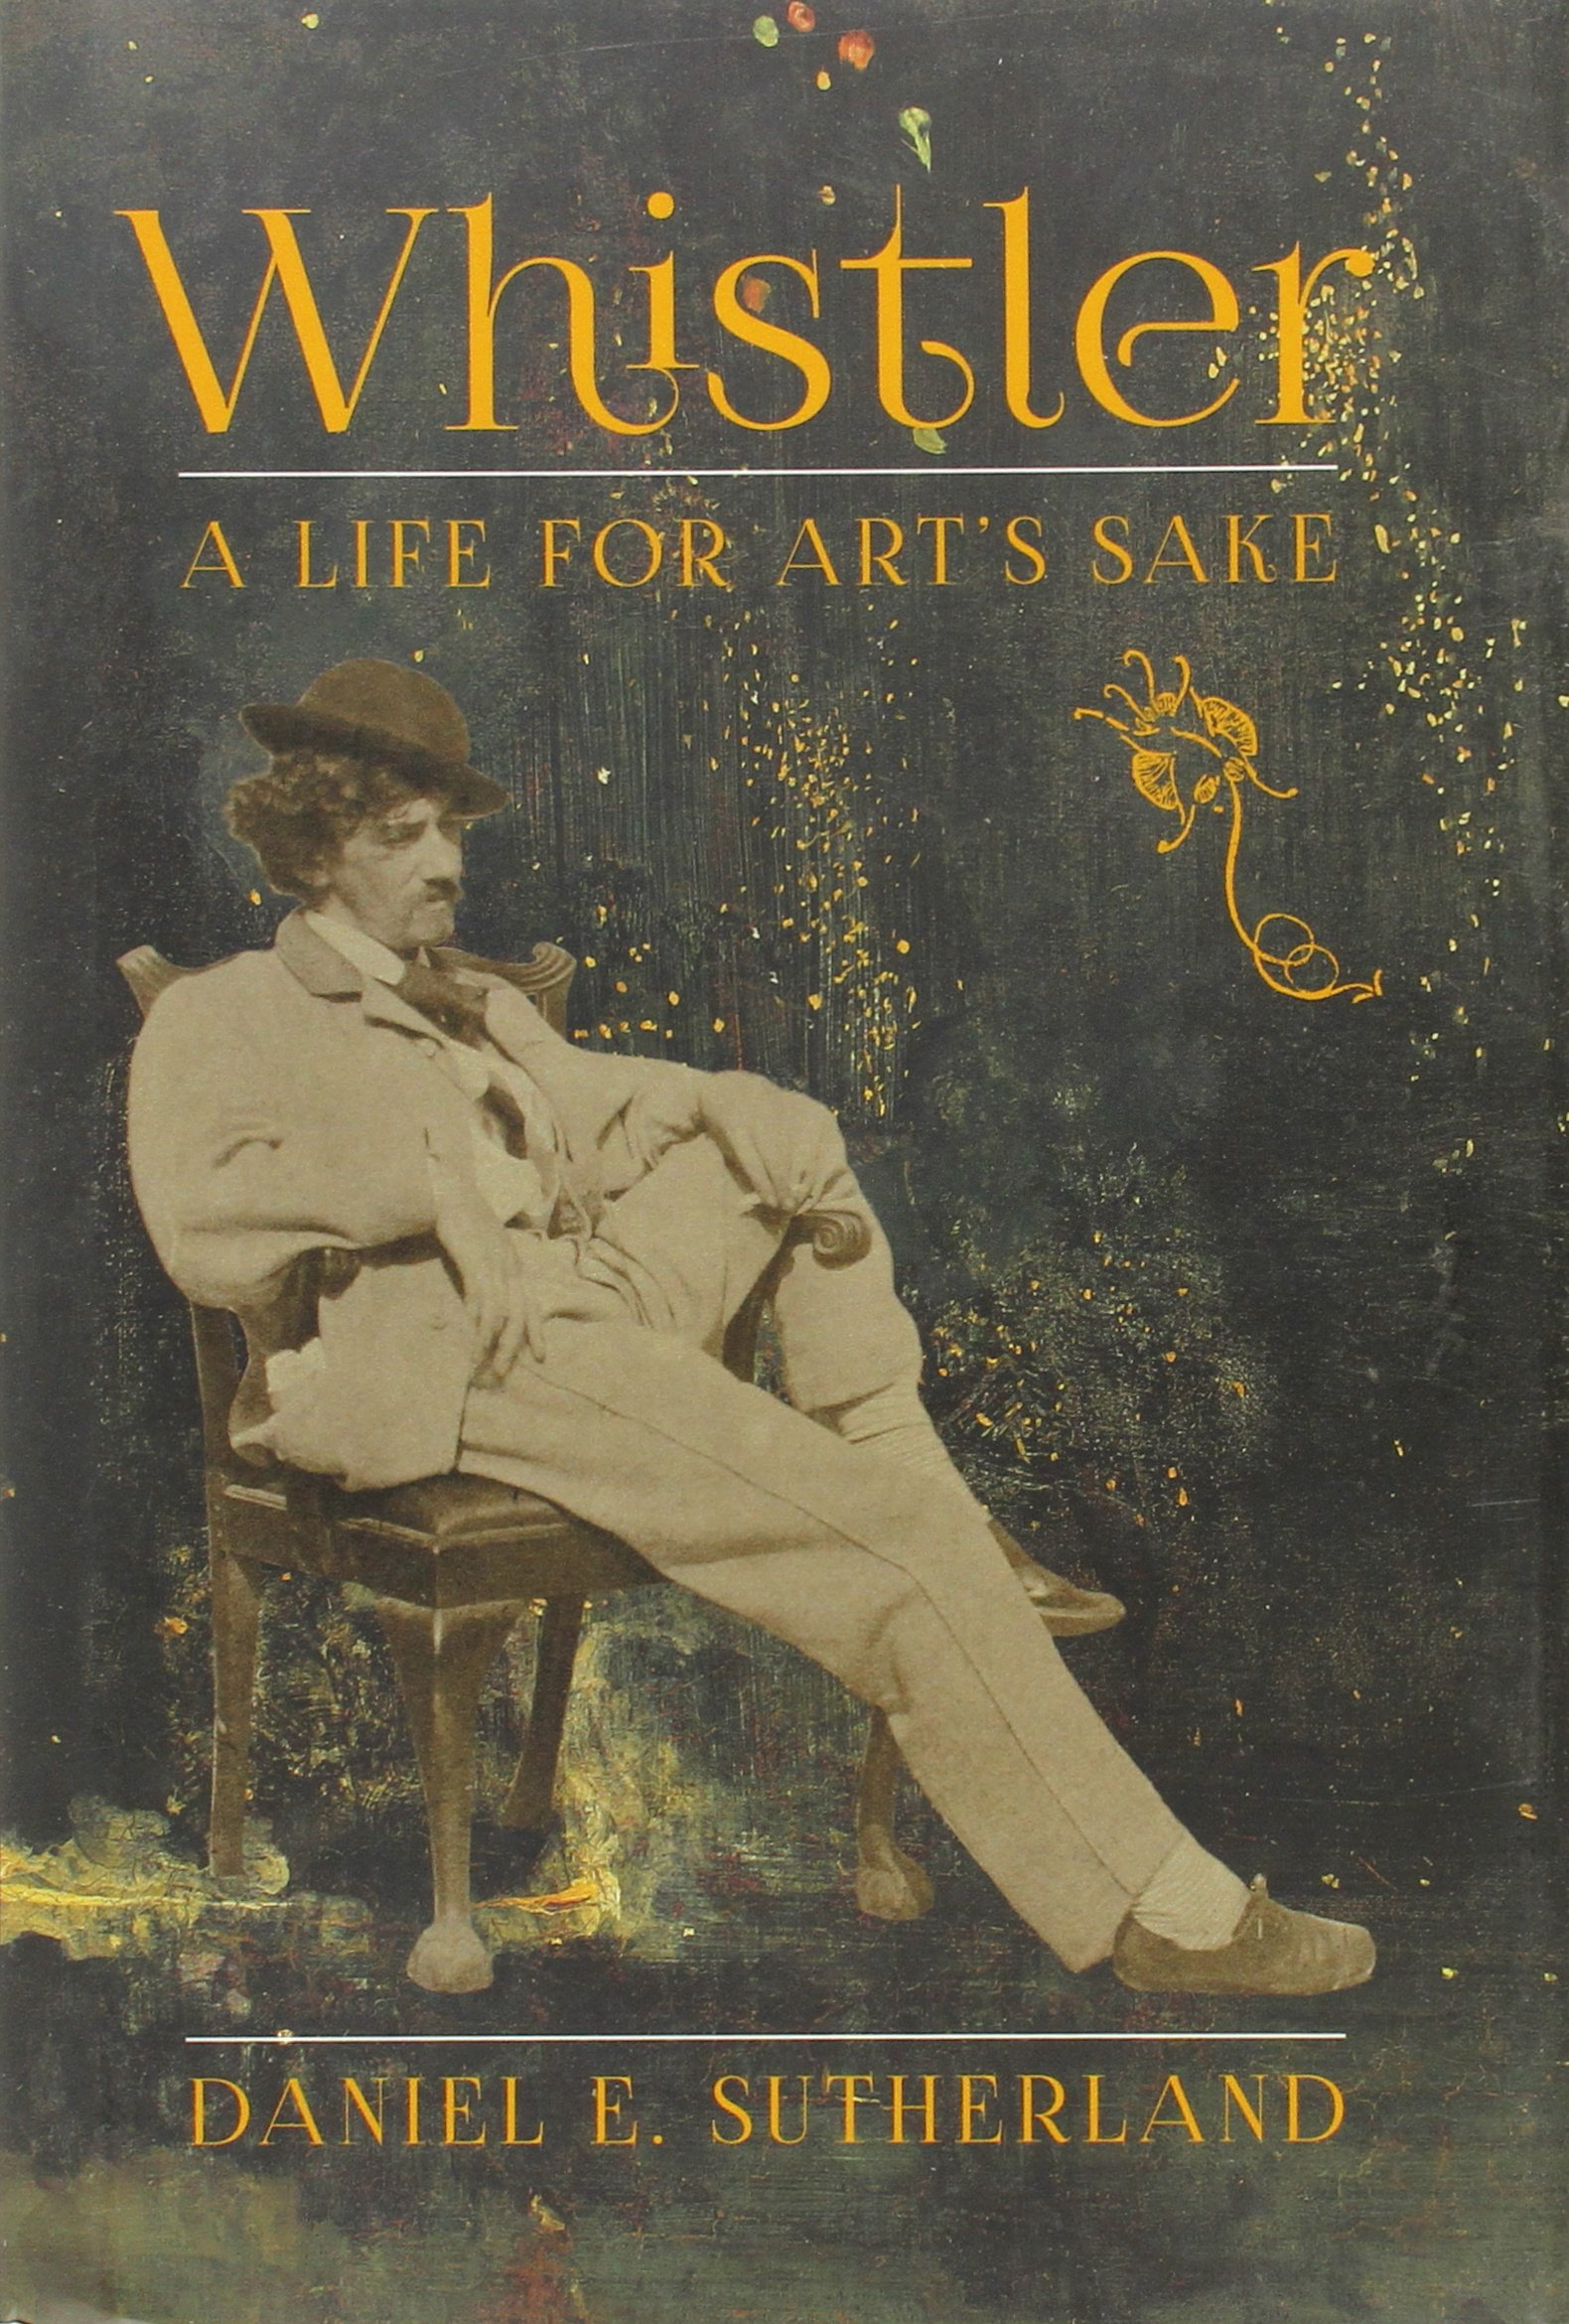 Whistler: A Life For Art's Sake: Amazon: Daniel E Sutherland:  9780300203462: Books